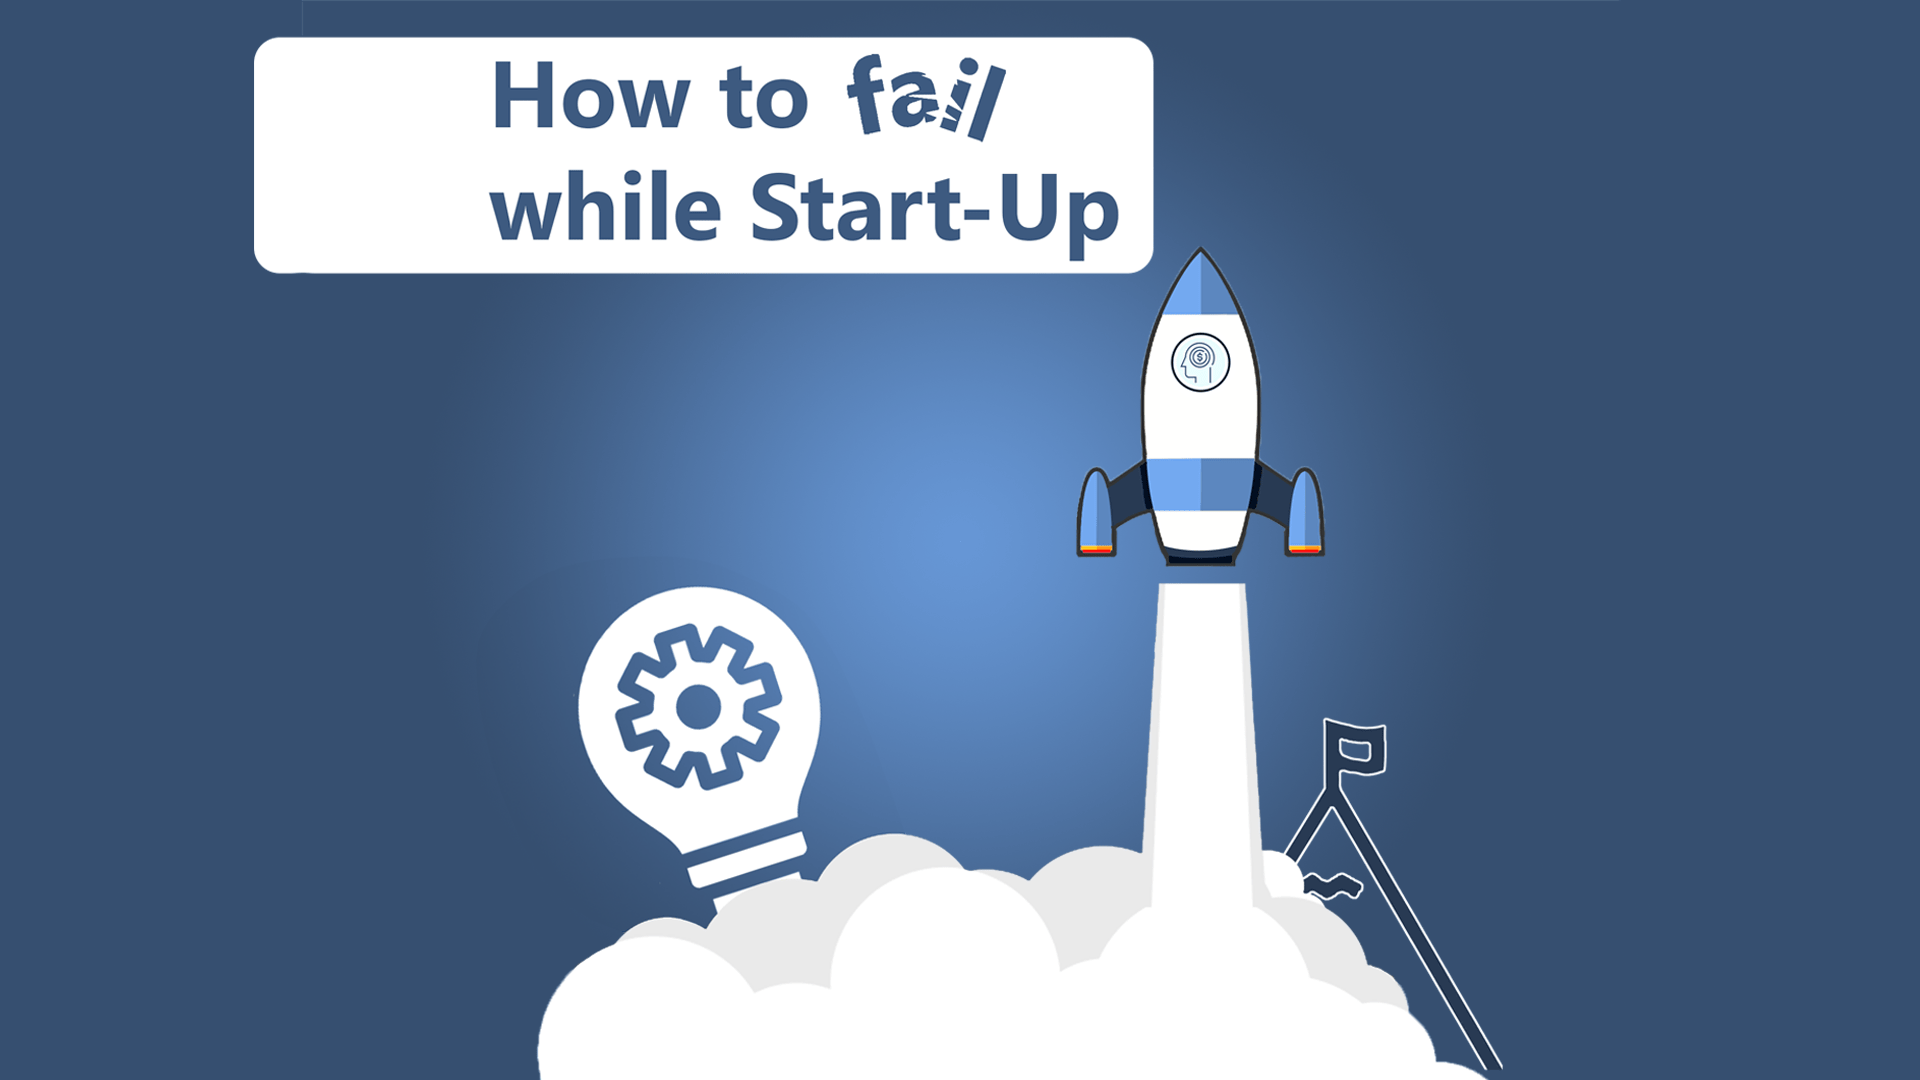 Podcast How to fail while start up